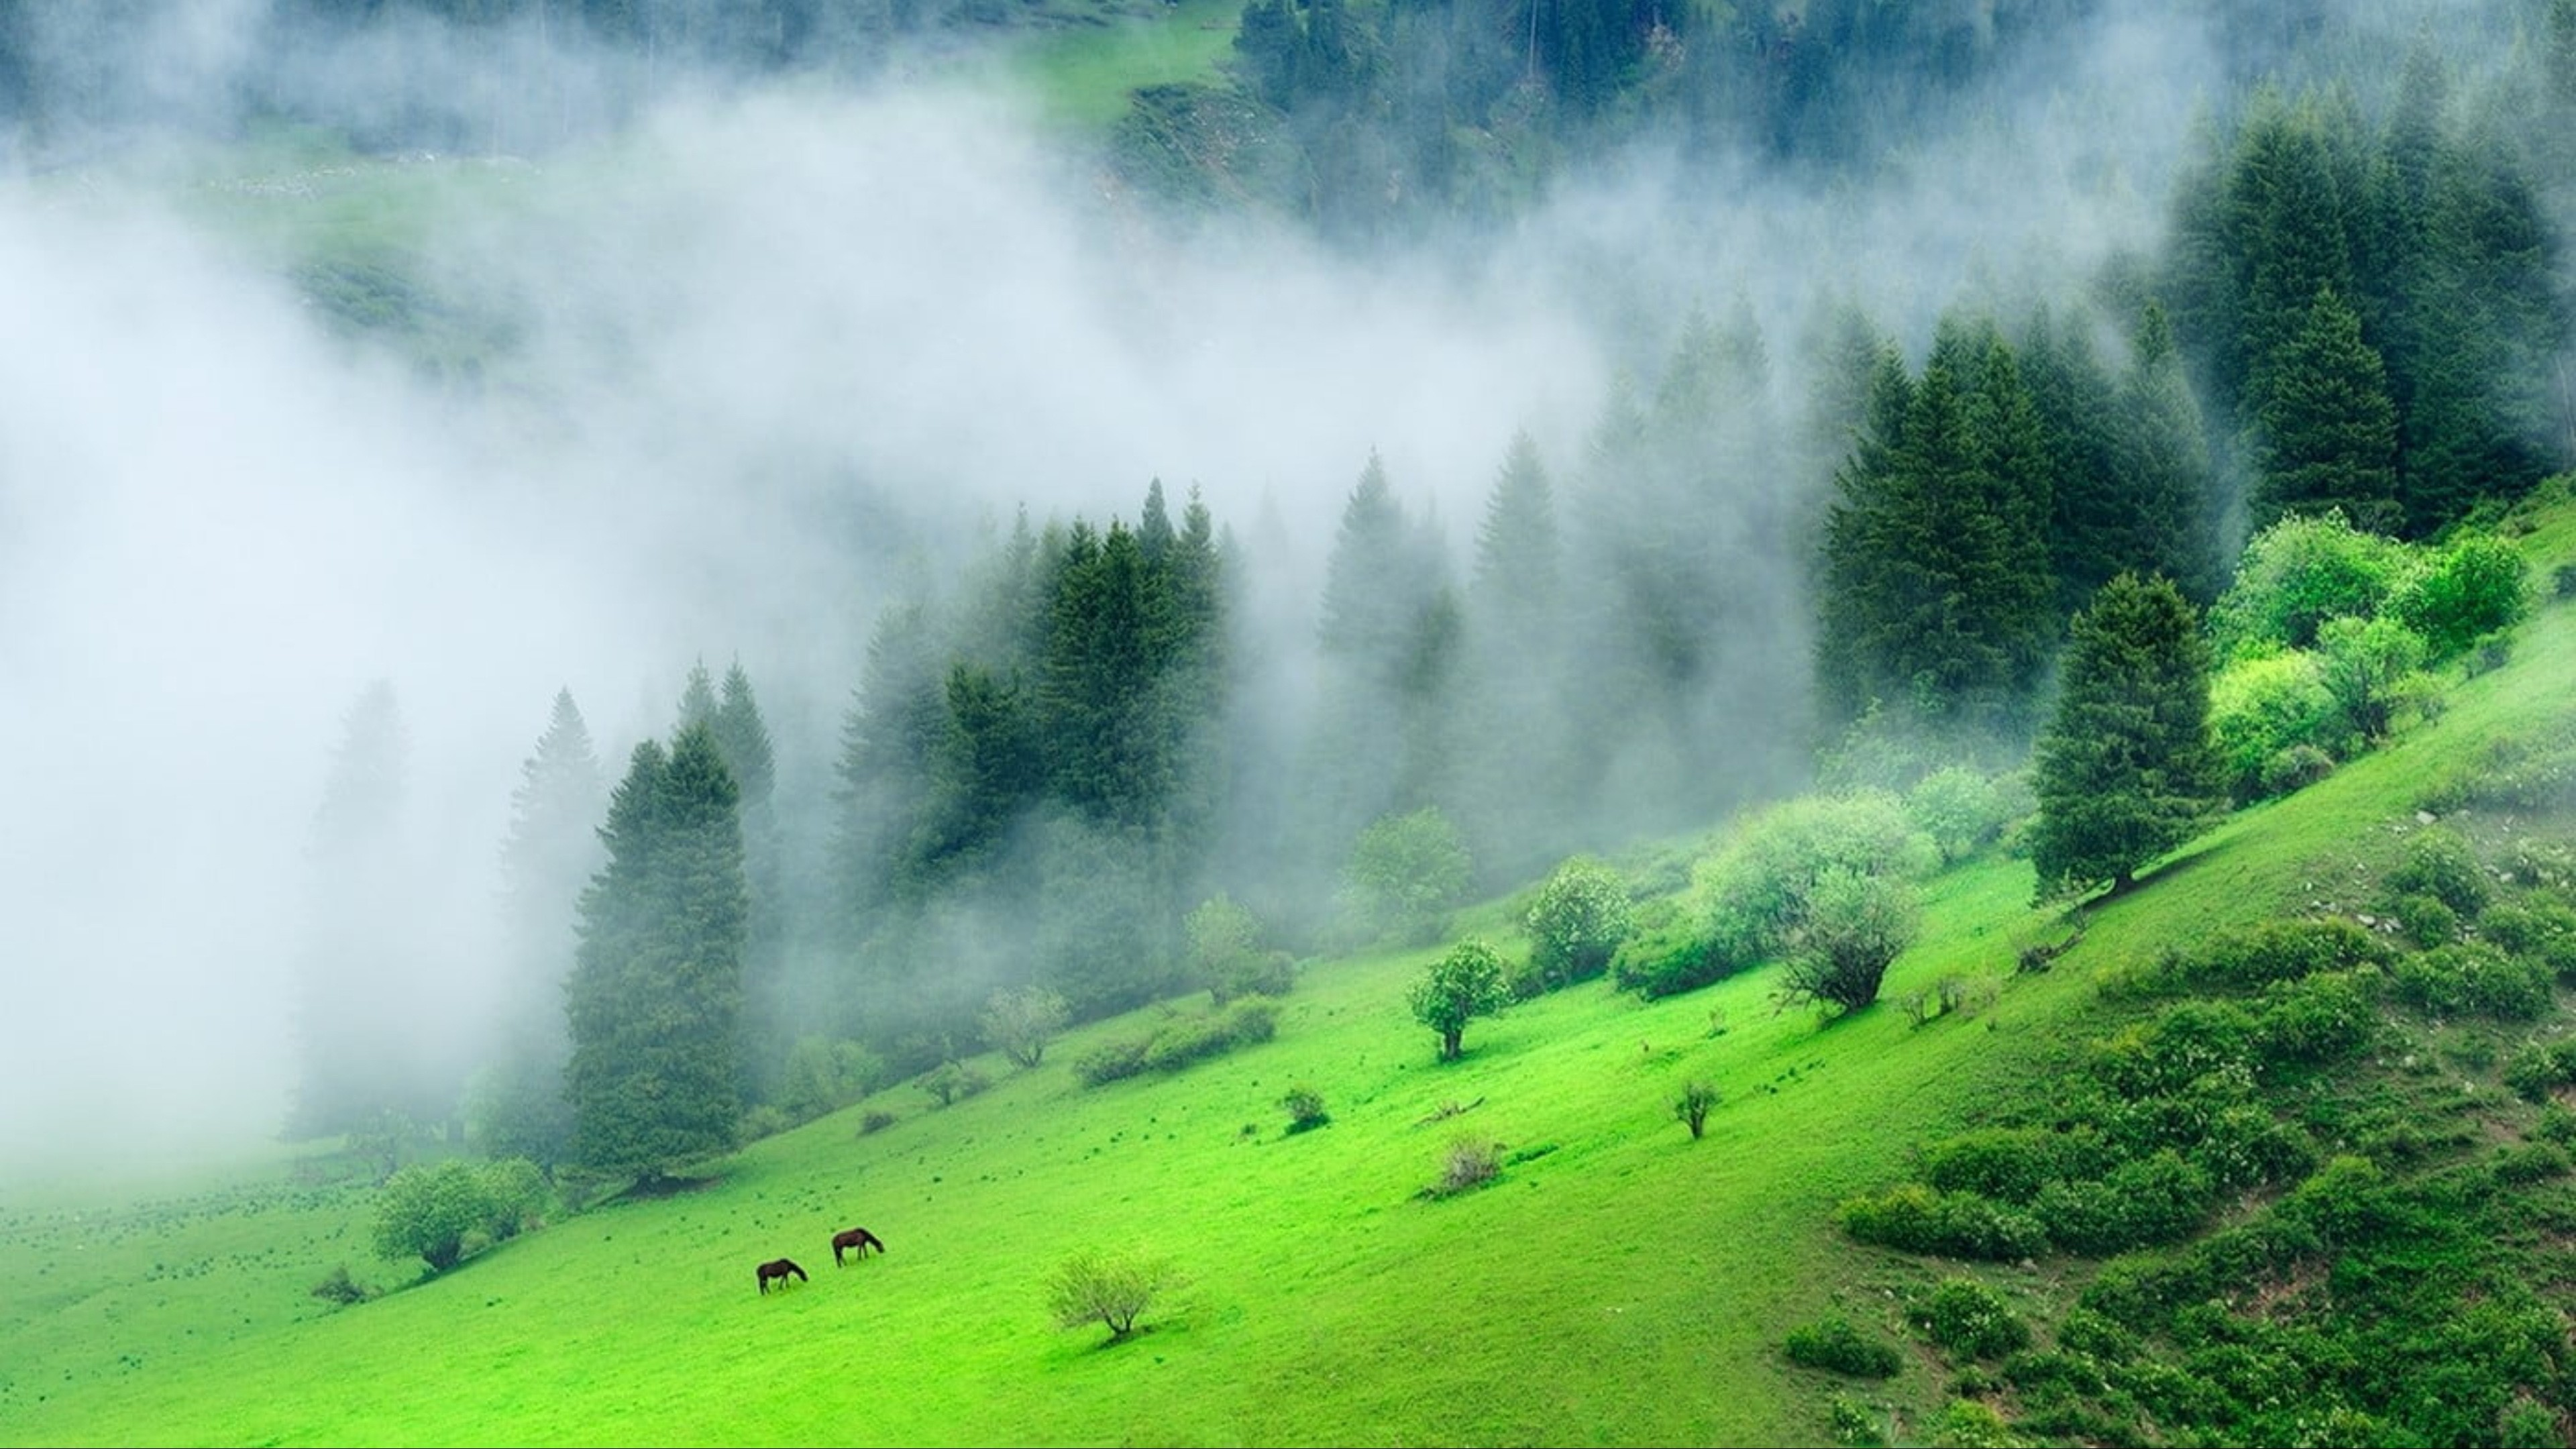 Green Forest Mountain Morning Time Wallpaper-3840x2160